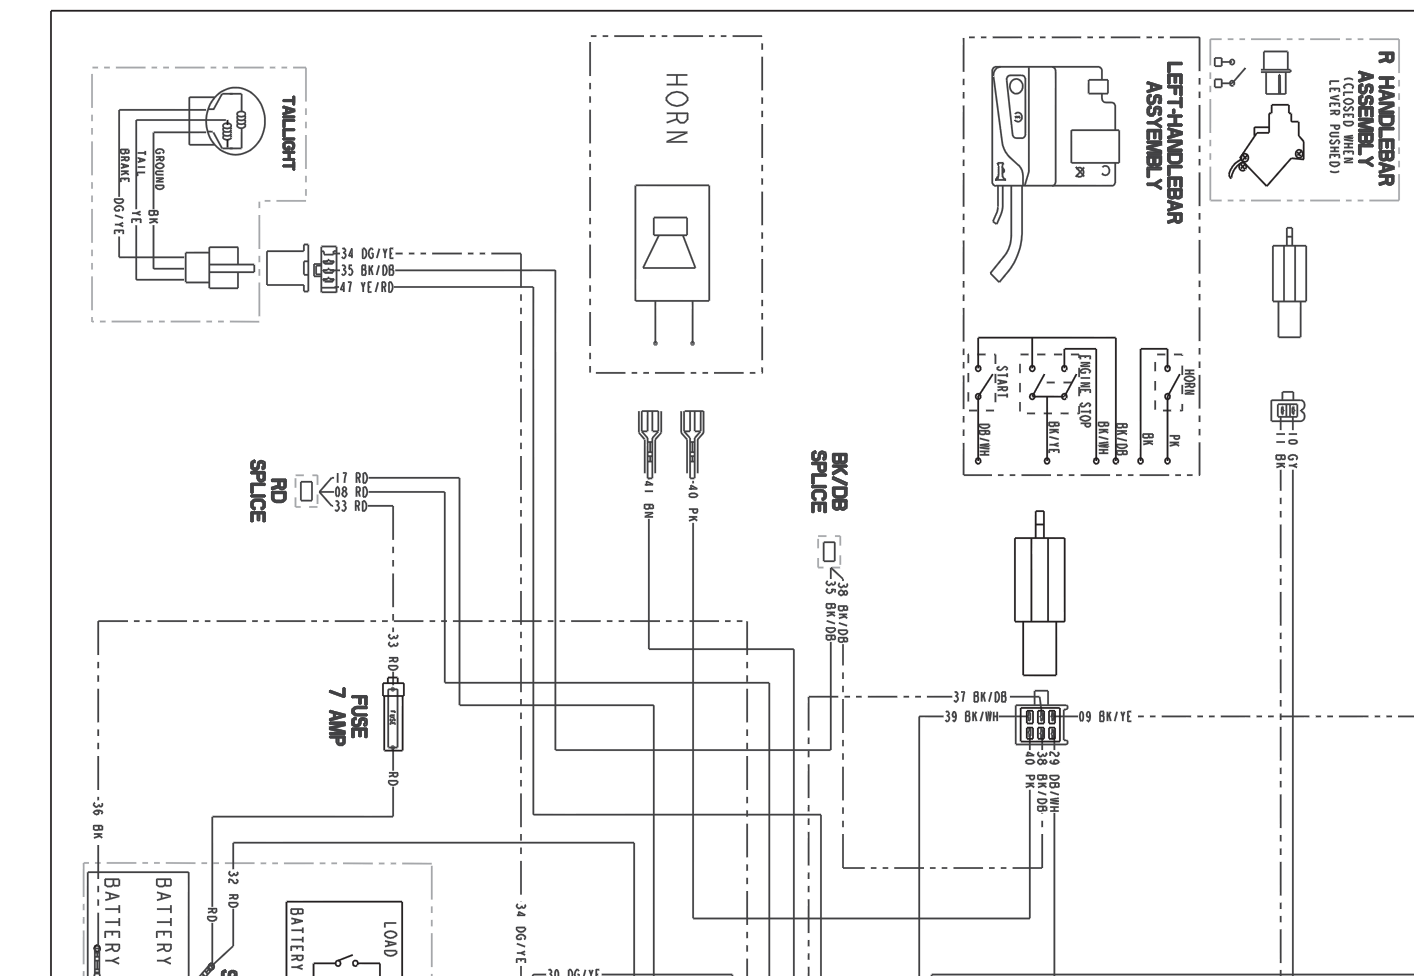 2003 polaris sportsman 90 wiring diagram polaris sportsman 90 wiring diagram